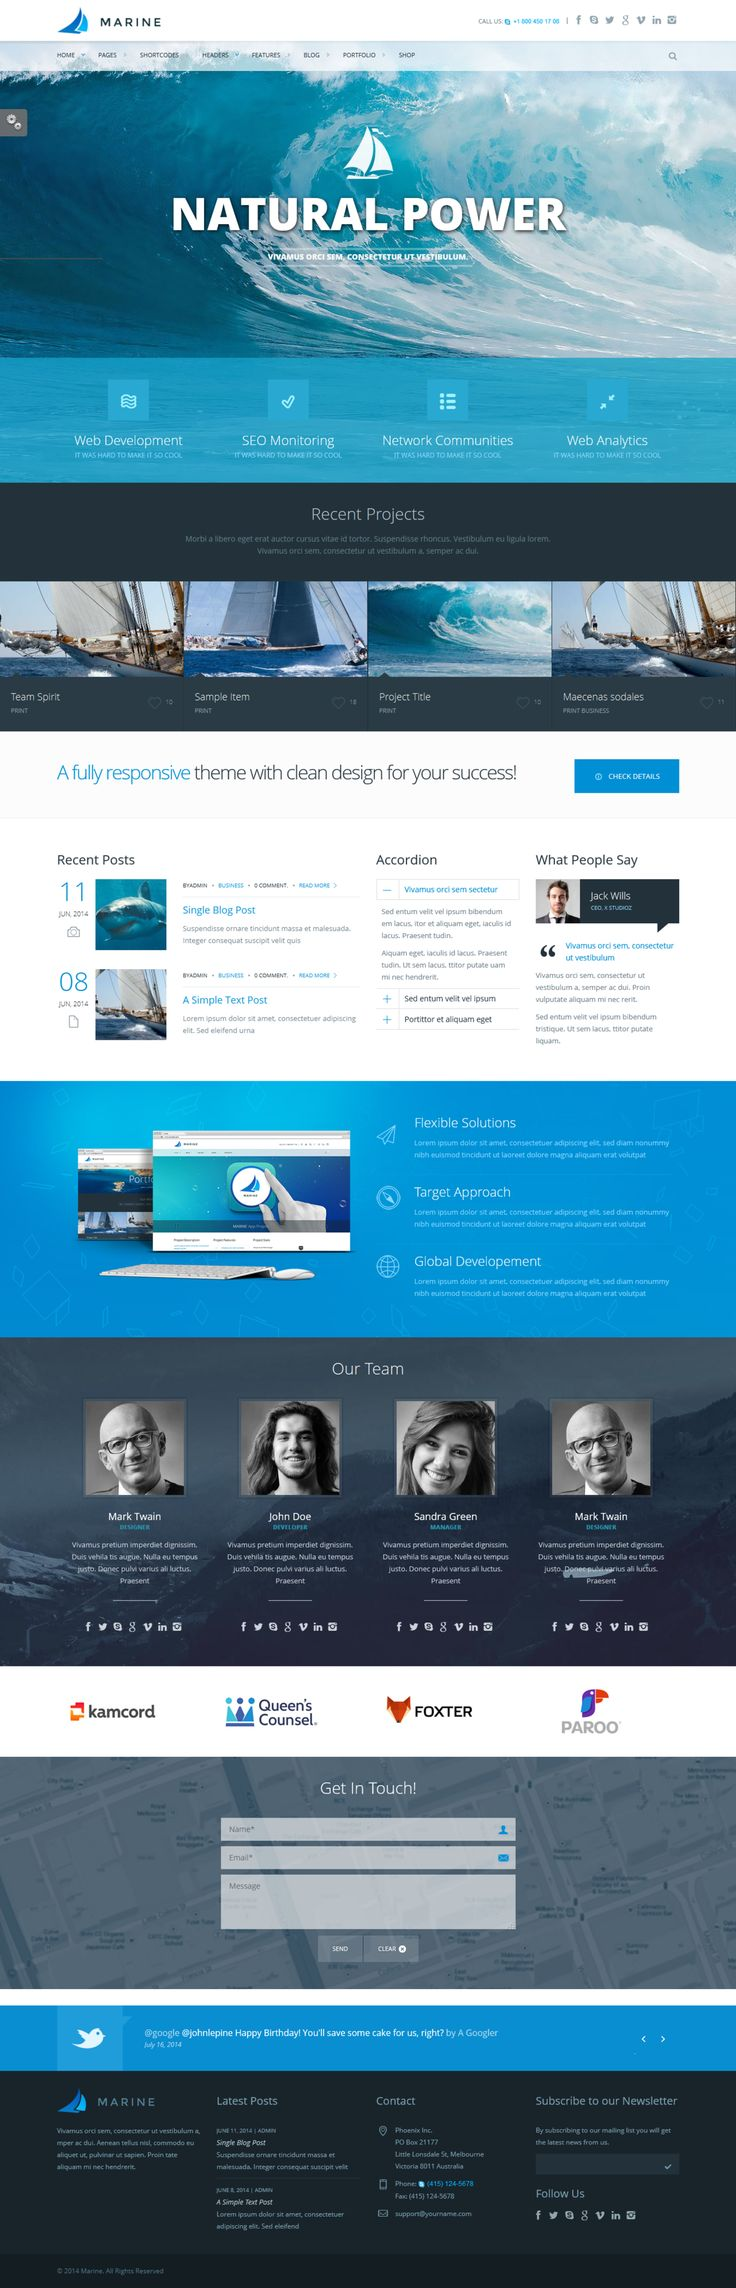 Marine - Retina Responsive Multi-Purpose Theme by webdesigngeek on DeviantArt